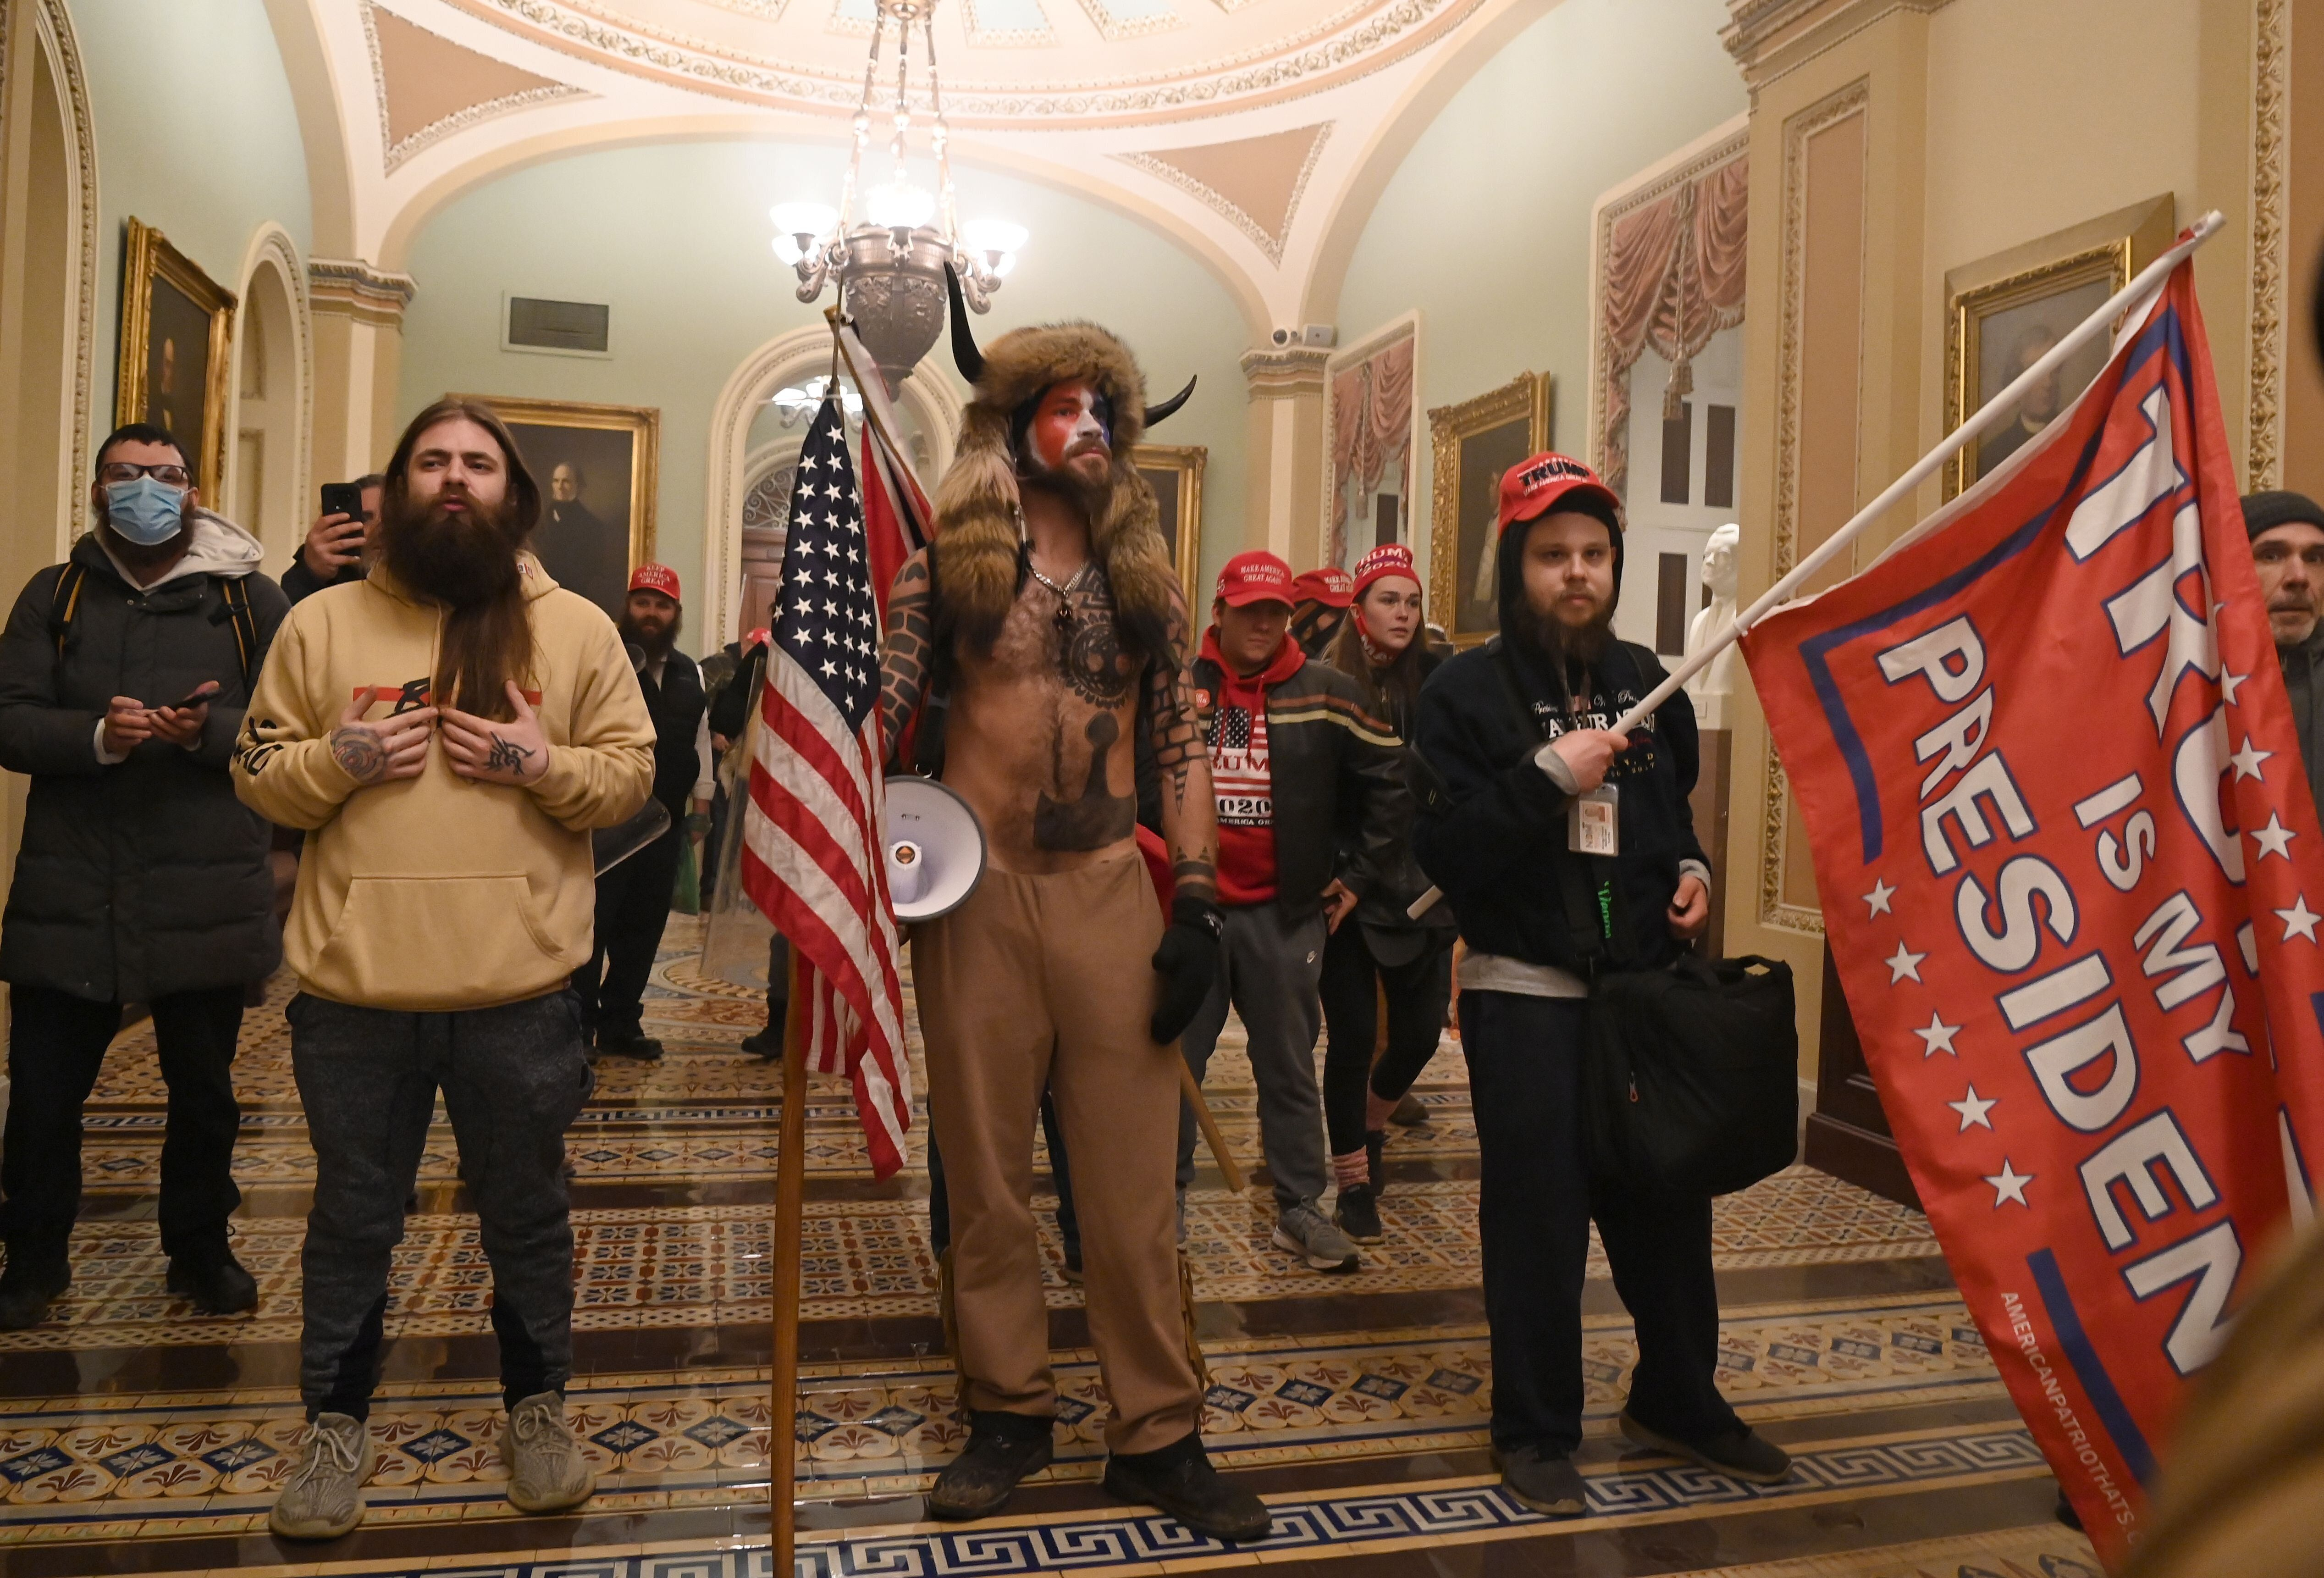 Trump supporters storm through the Capitol on Wednesday after breaching security and breaking through windows and doors while